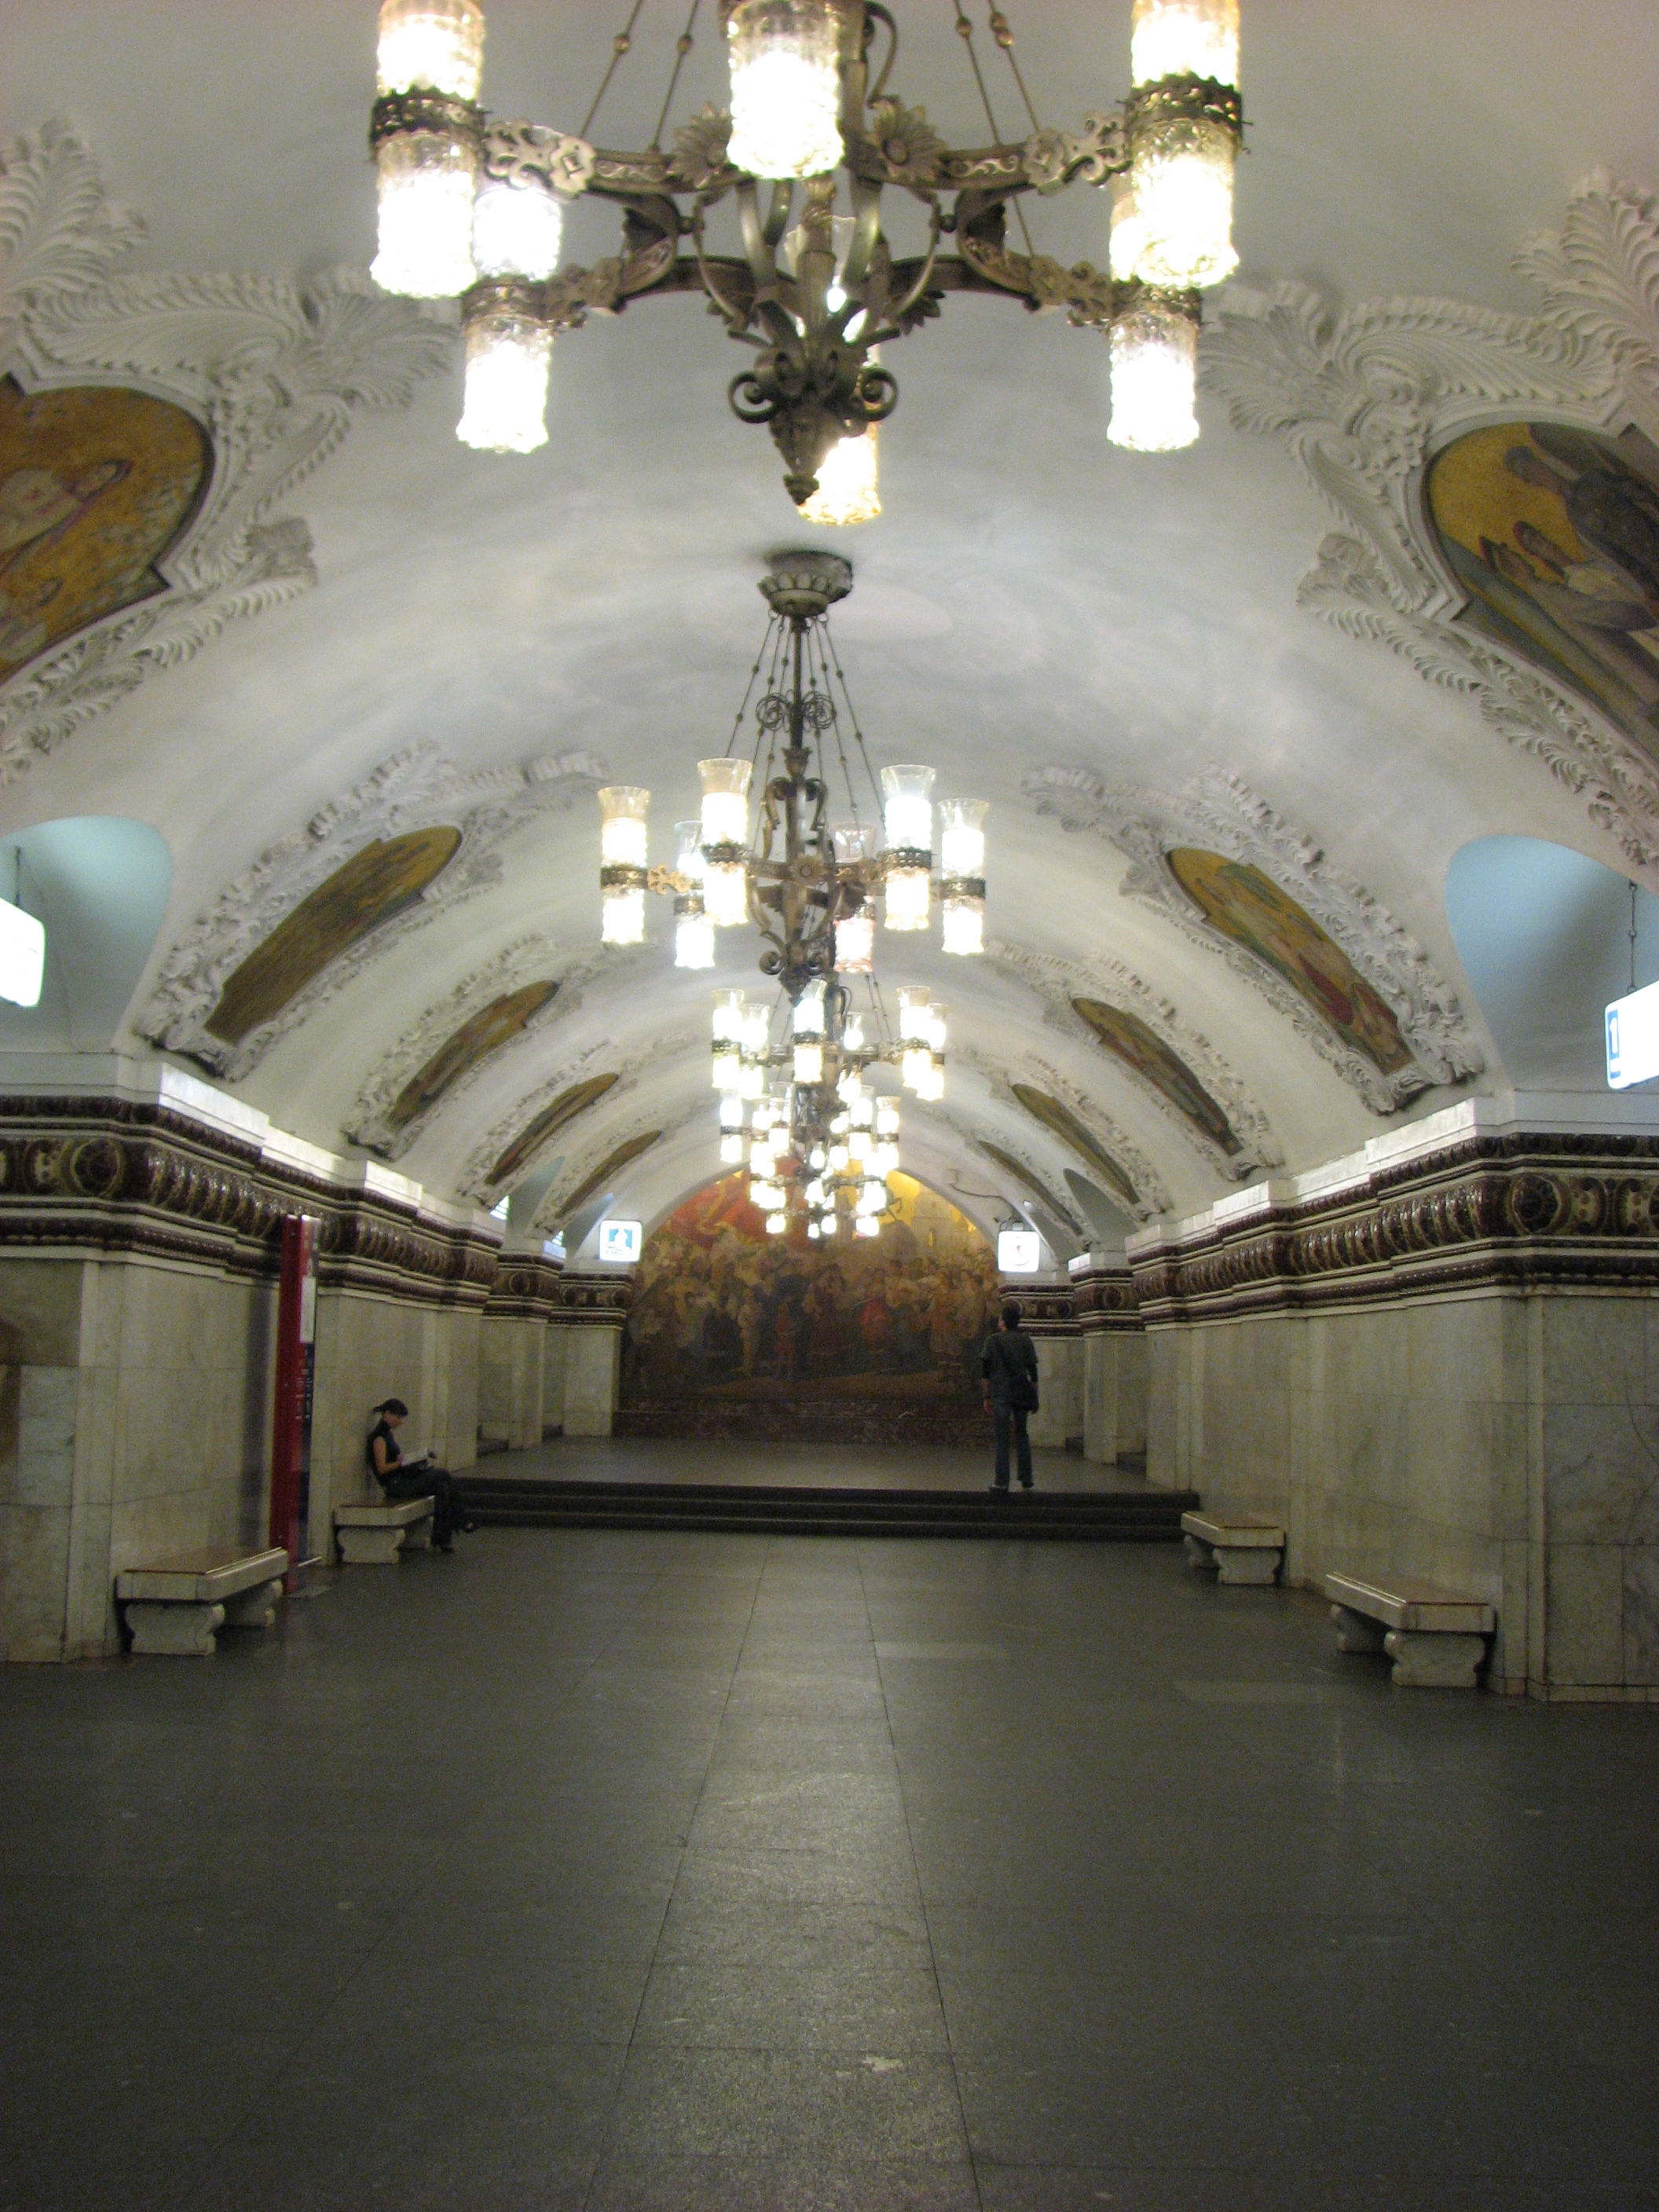 Typical interior of the Moscow Subway